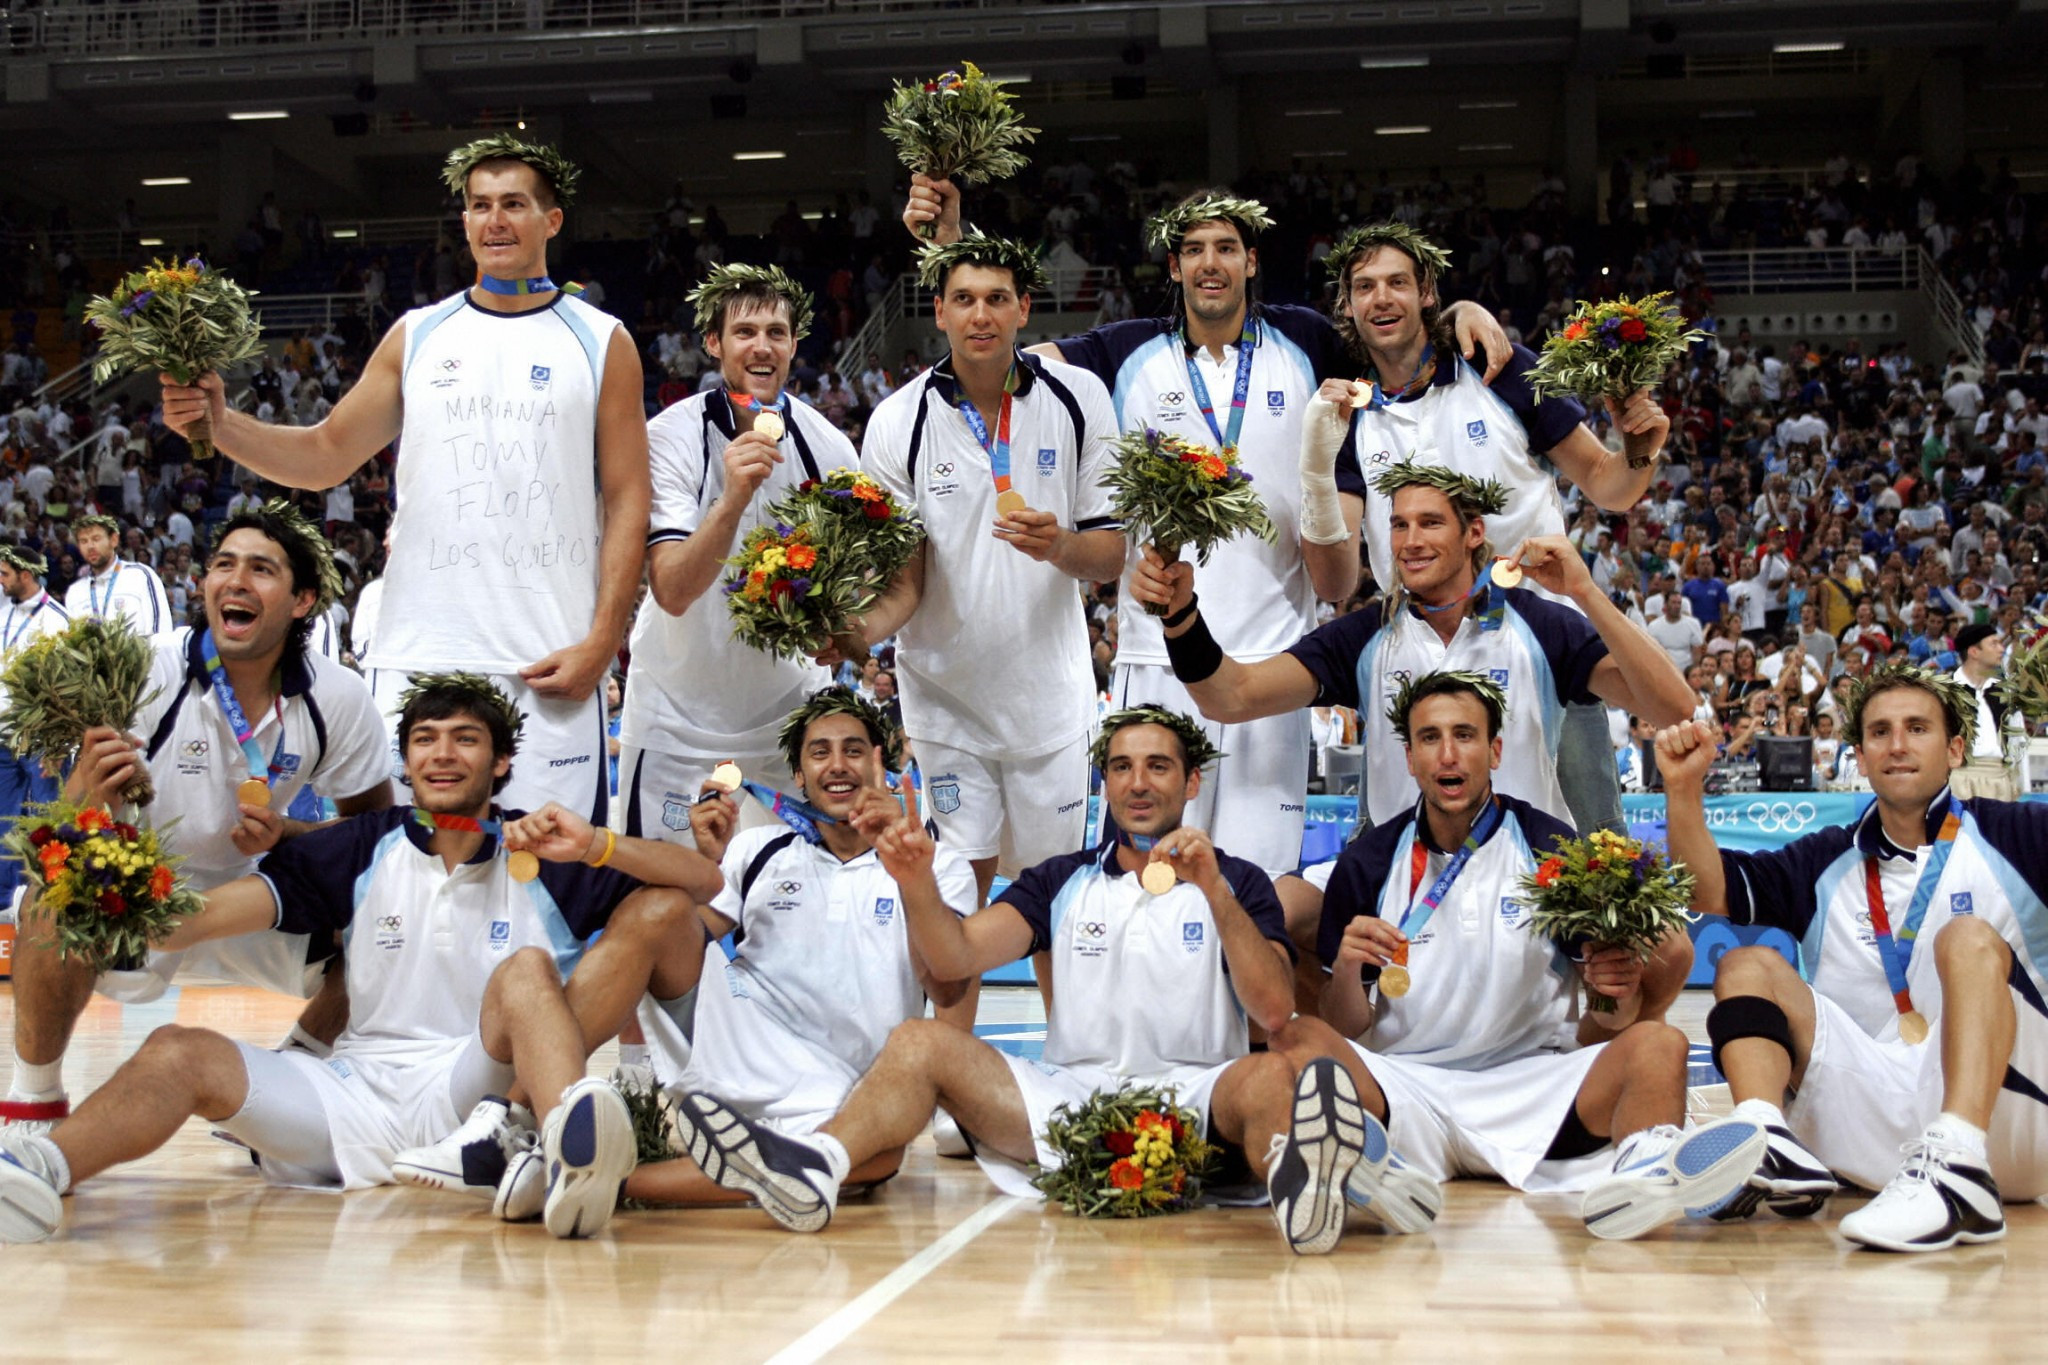 Argentina claimed the men's basketball gold at Athens 2004 ©Getty Images